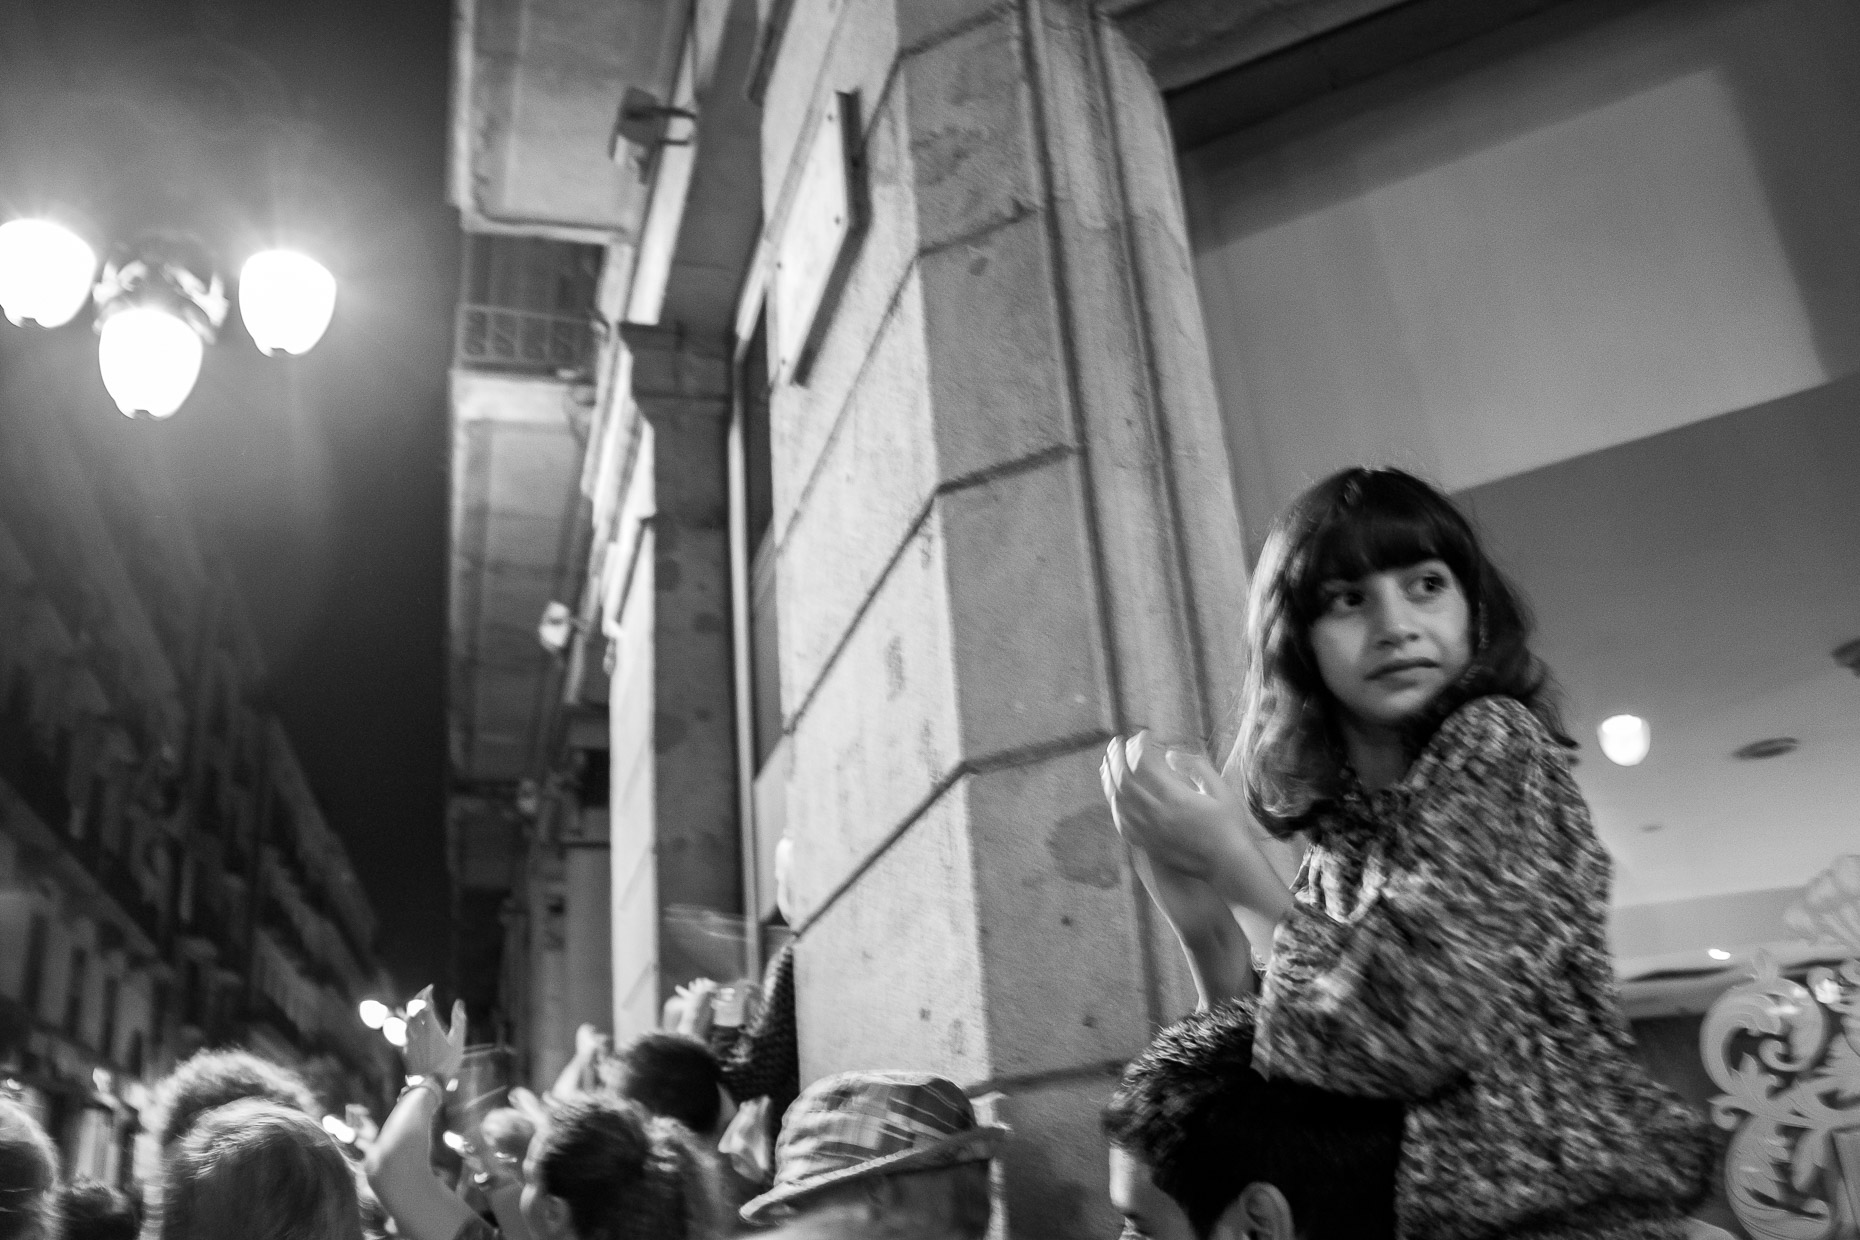 EYoung girl at festival, Gothic Quarter, Barcelona, Spain